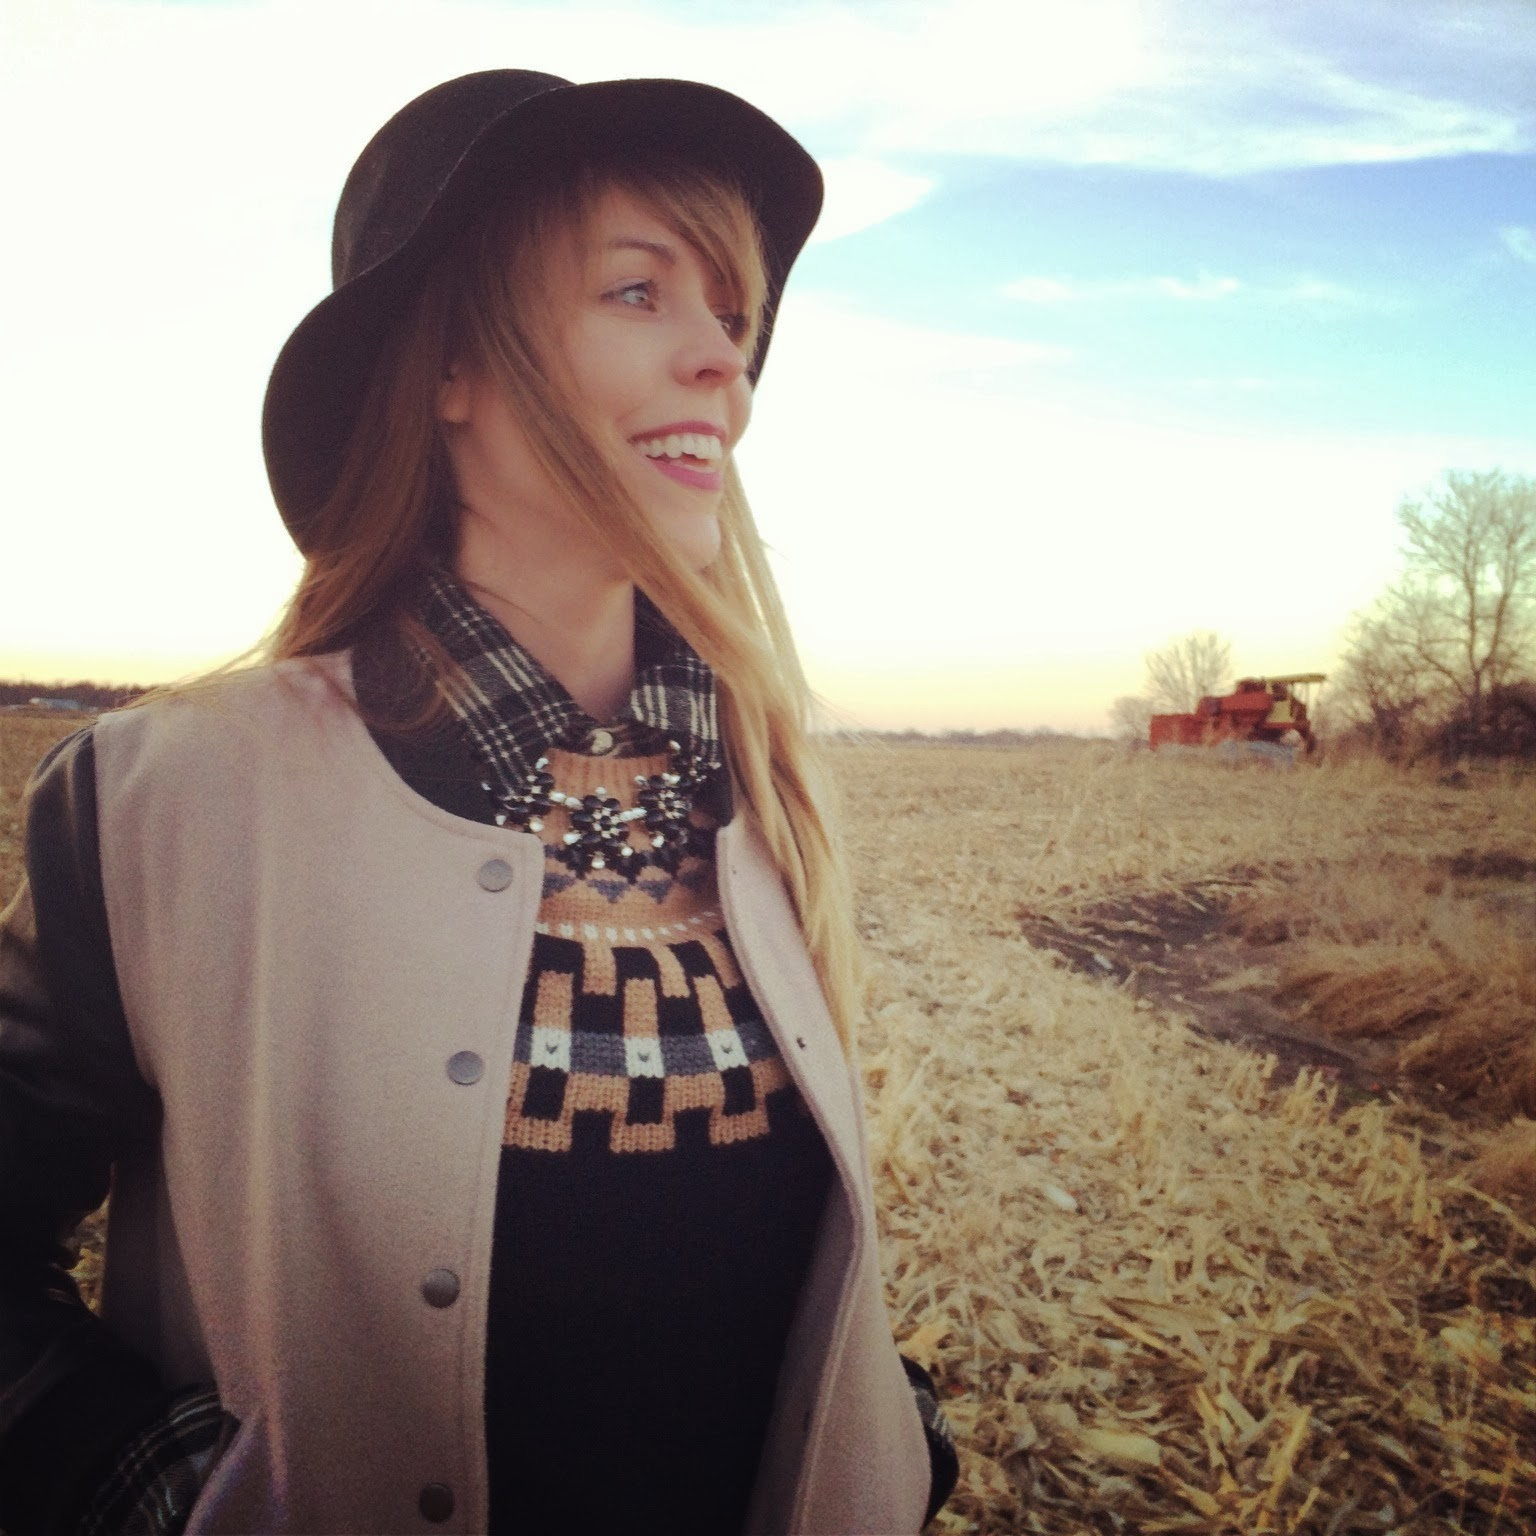 Nebraska, cornfield, Madewell, Topshop, Plaid, Denim, Fashion, Casual, Roots